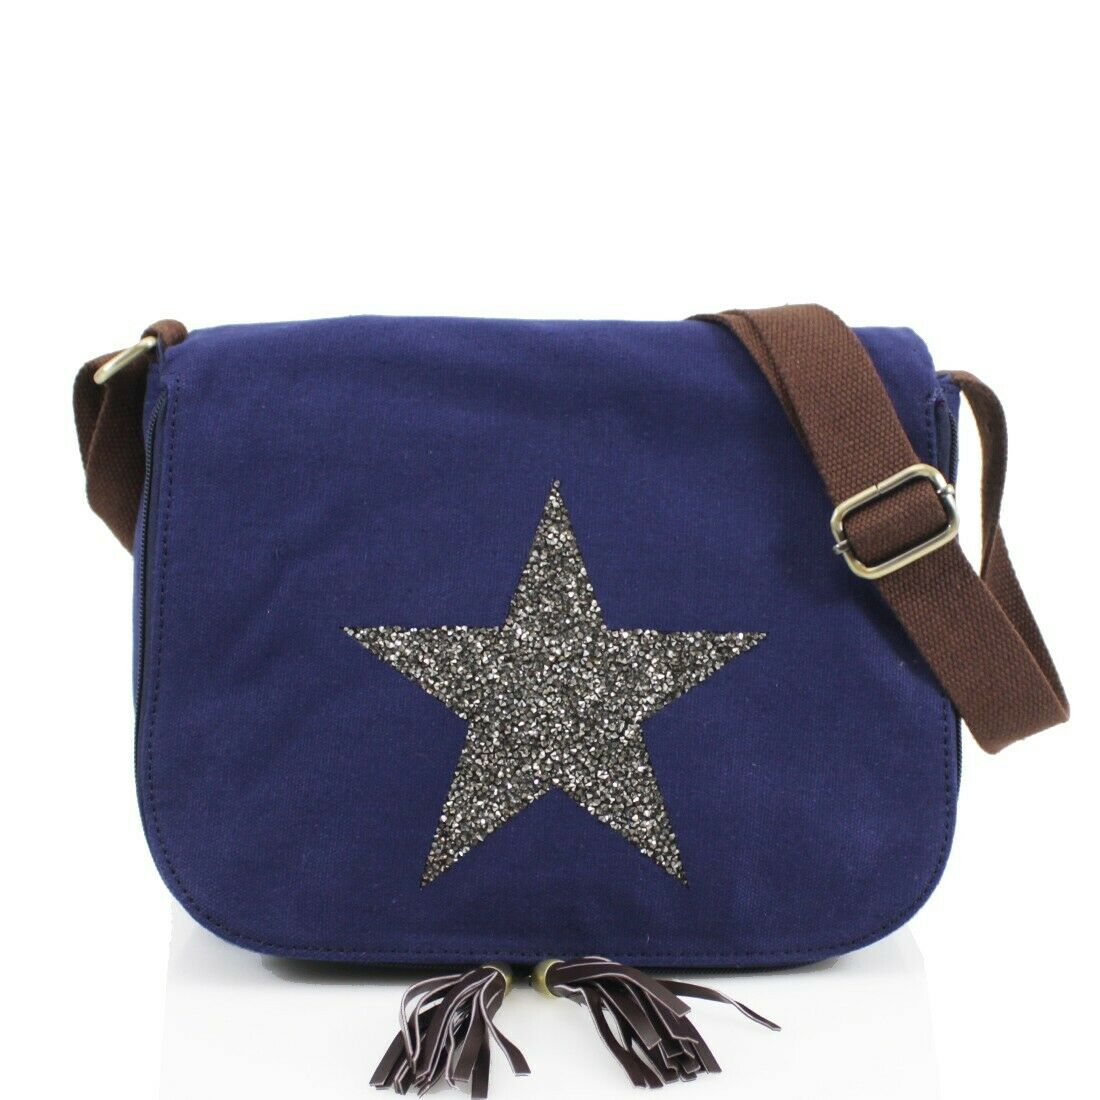 0fc86939b Navy Crystal Encrusted Star Saddle Bag - Elsie's Attic